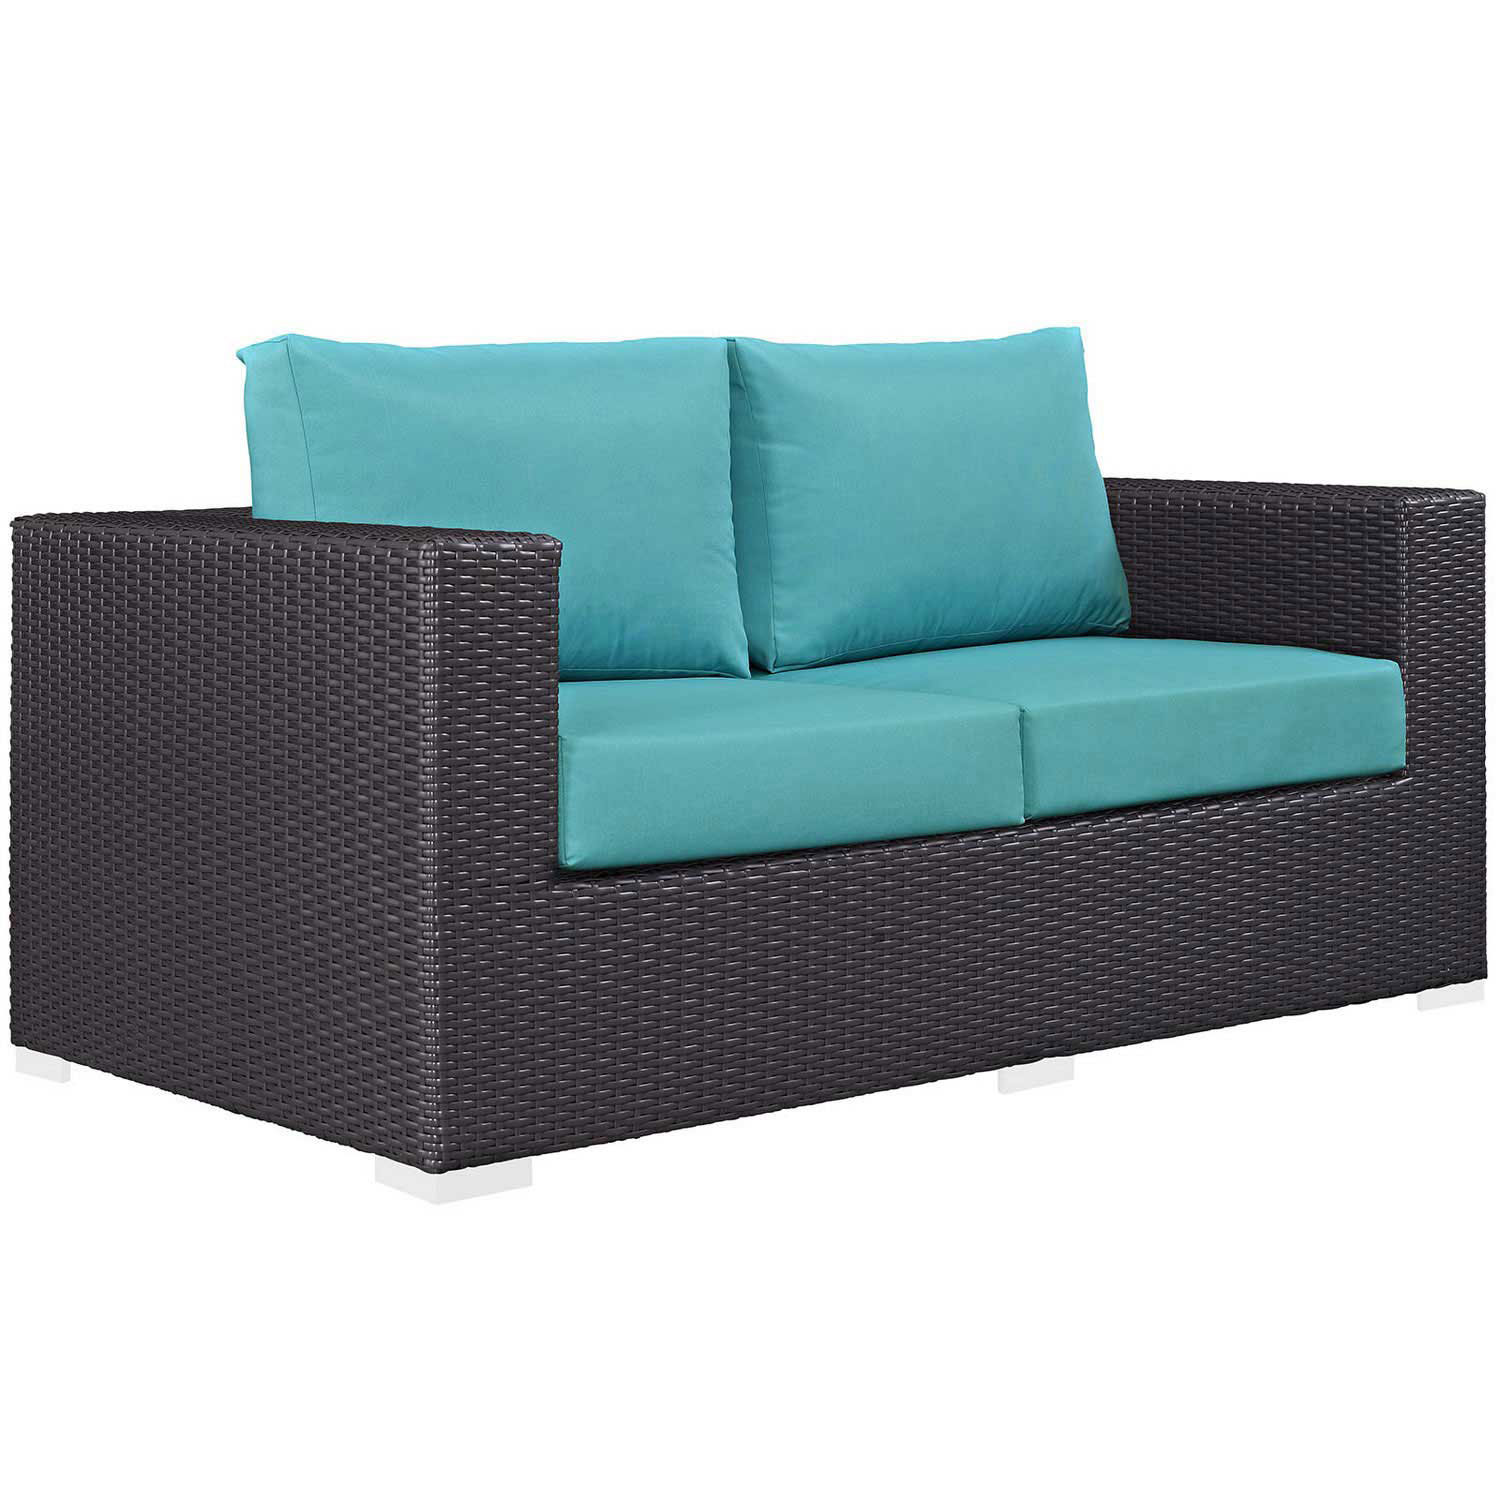 Modway Convene Outdoor Patio Loveseat - Espresso Turquoise